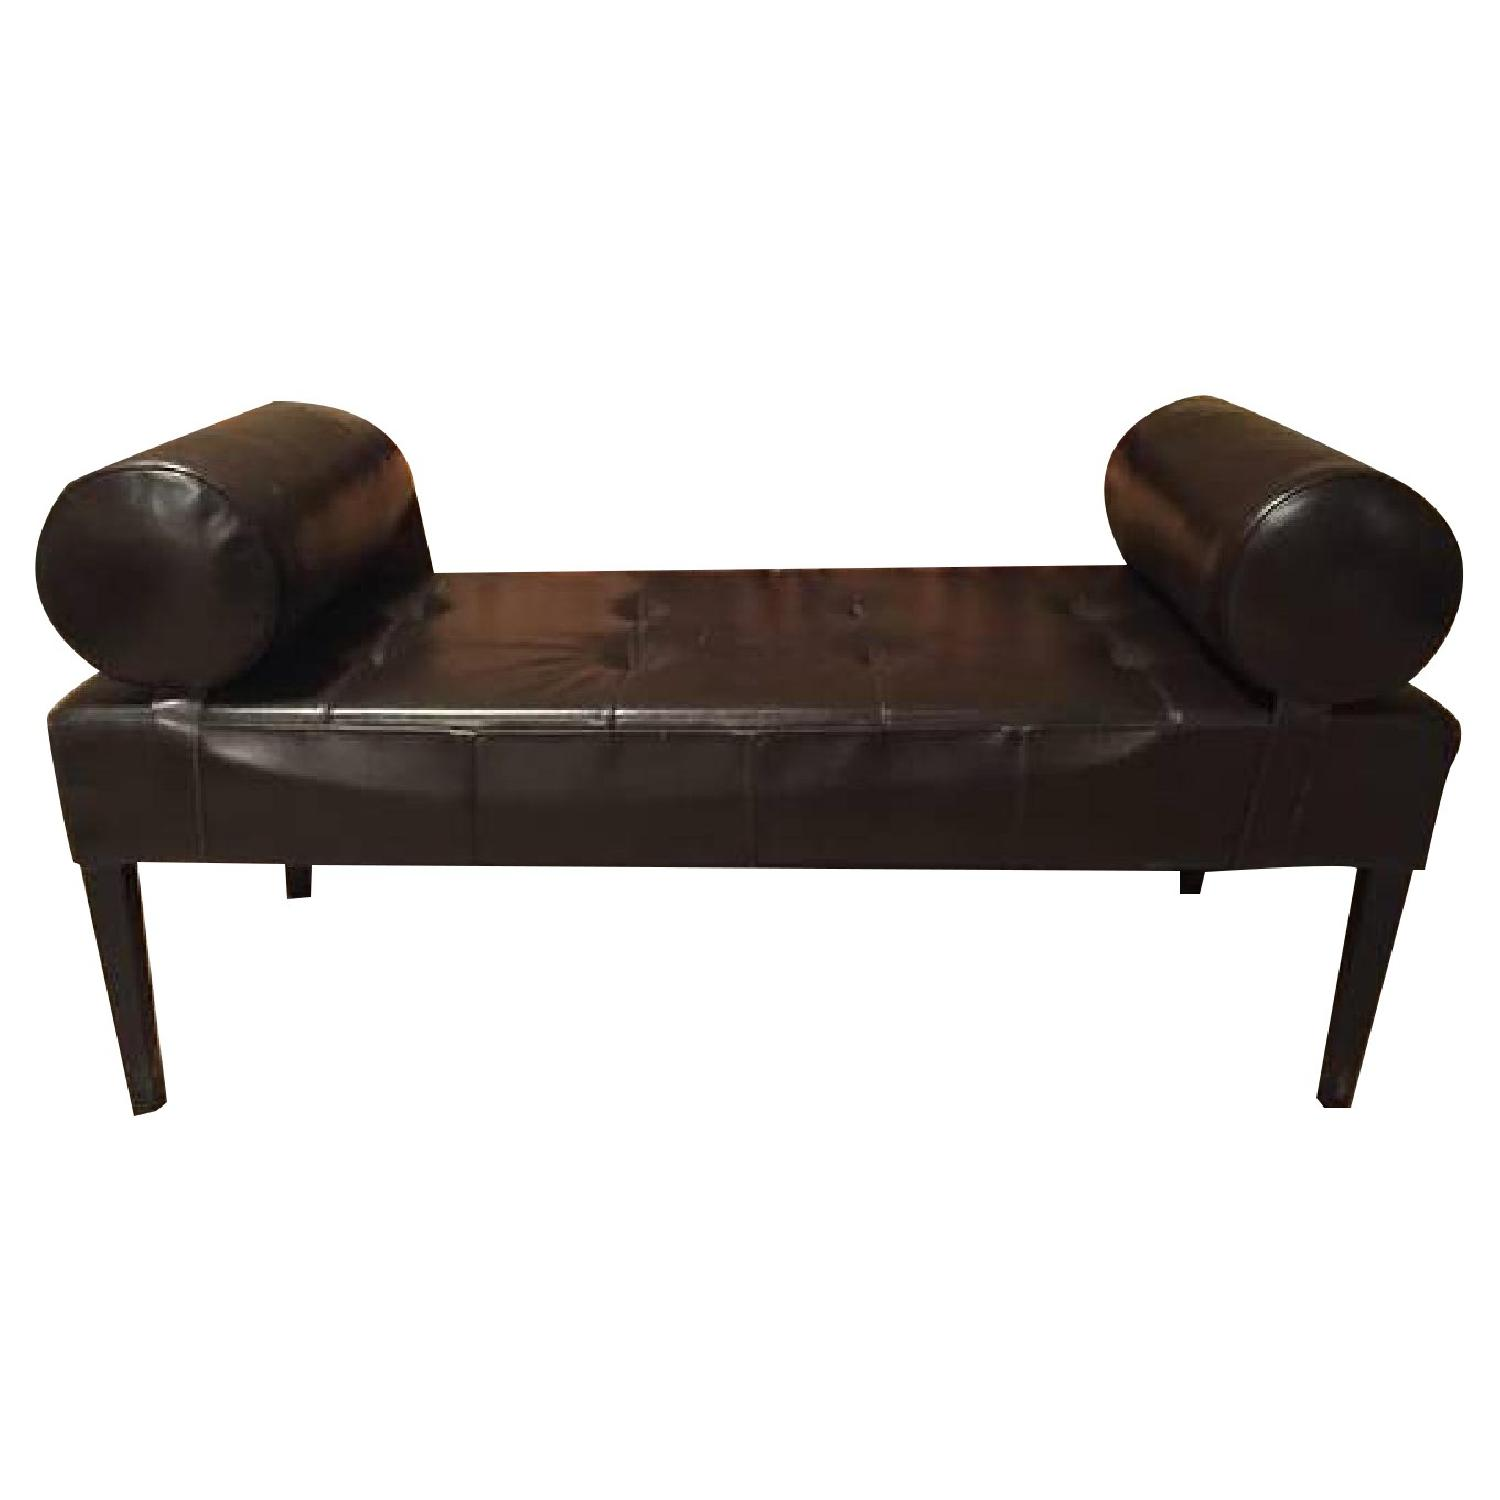 Leather Bench with Arms - image-0